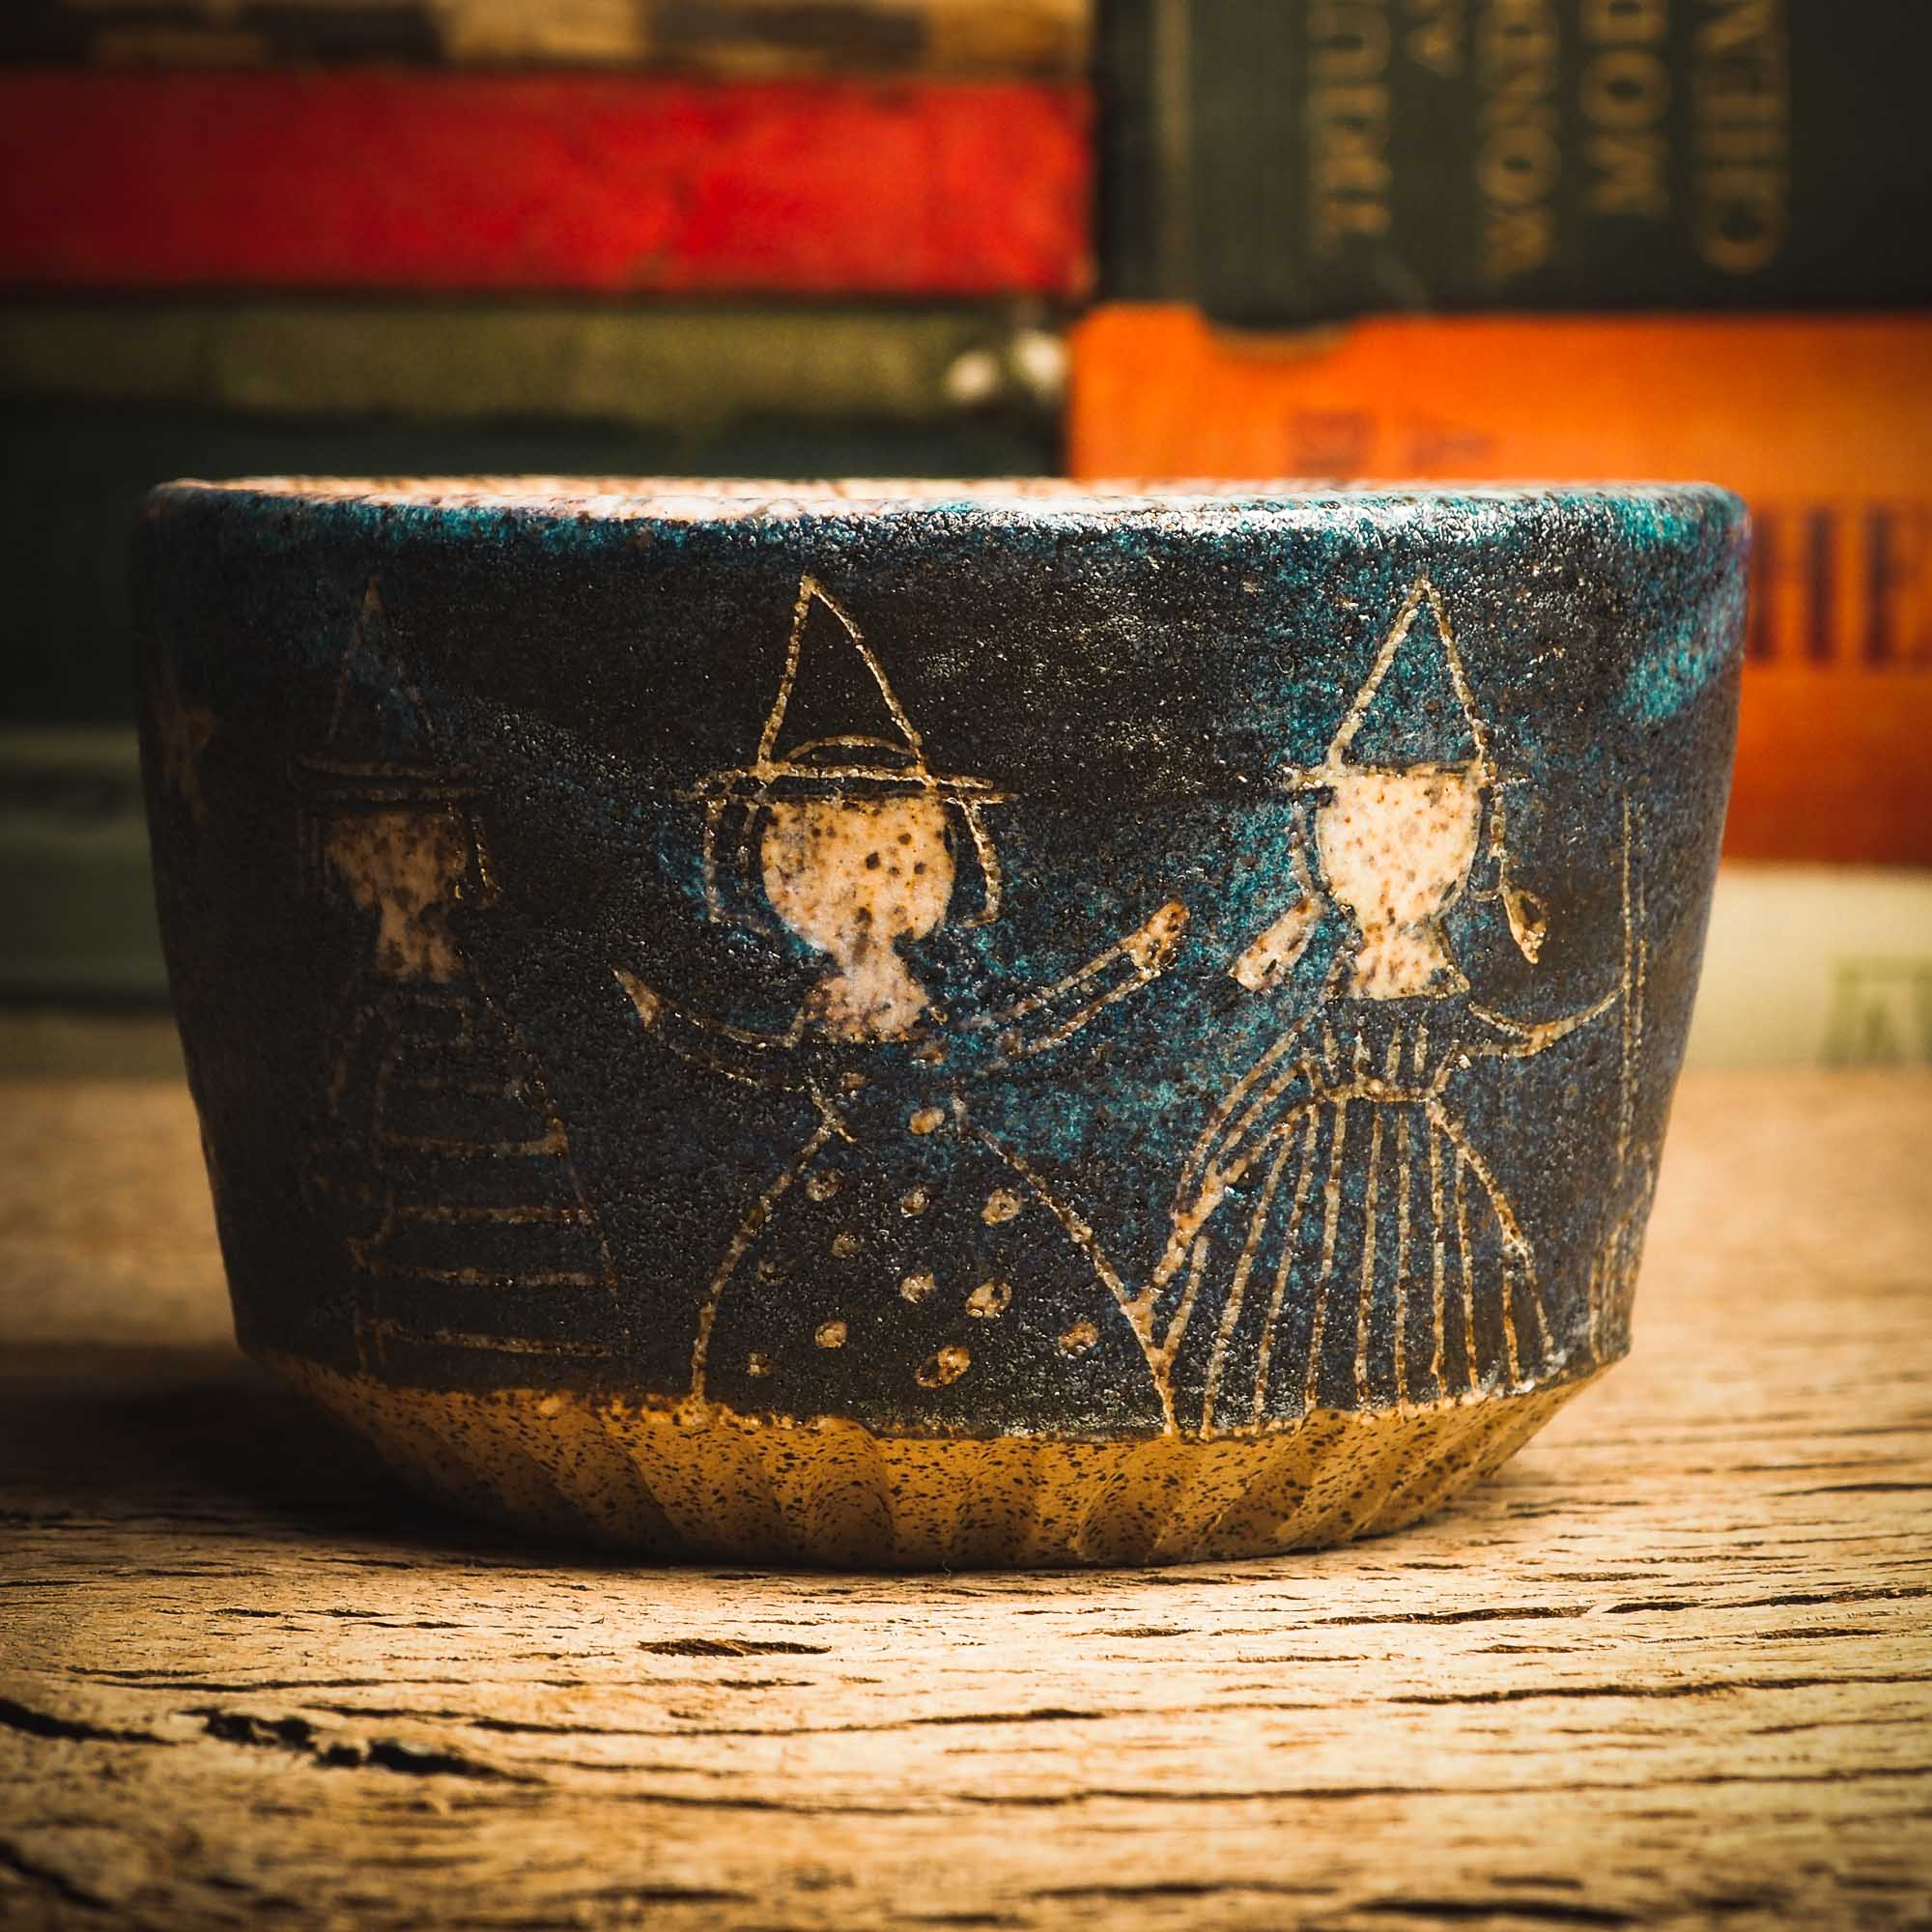 This little handmade ceramic halloween bowl by Idania Salcido Daita art has three witches carved on it, they are ready to cast a spell during a dark starry night, and you can see the magic stream from their wands in subtle bands of color across the deep, midnight blue sky. And of course, the moon and stars are there with them.